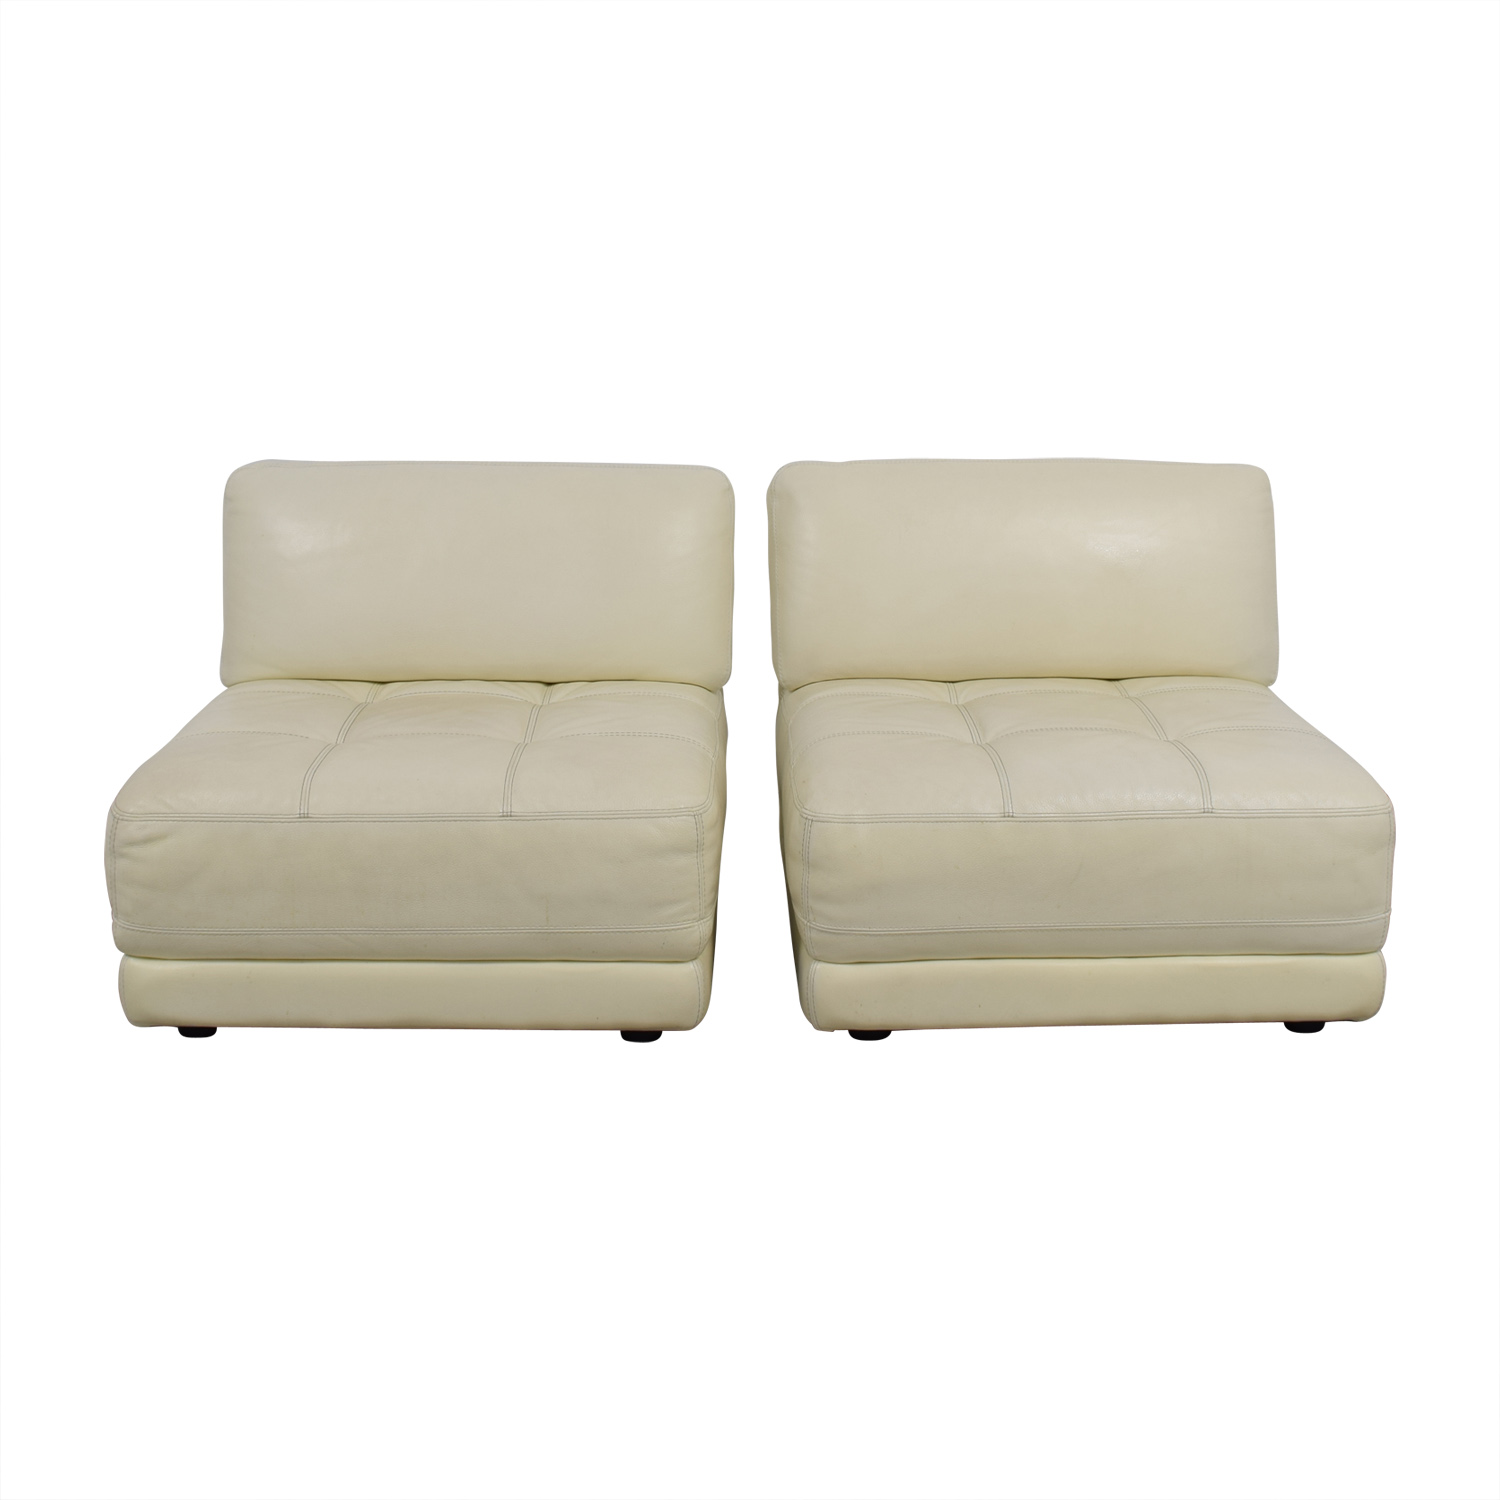 Macy's Macy's Modulara White Leather Chairs second hand